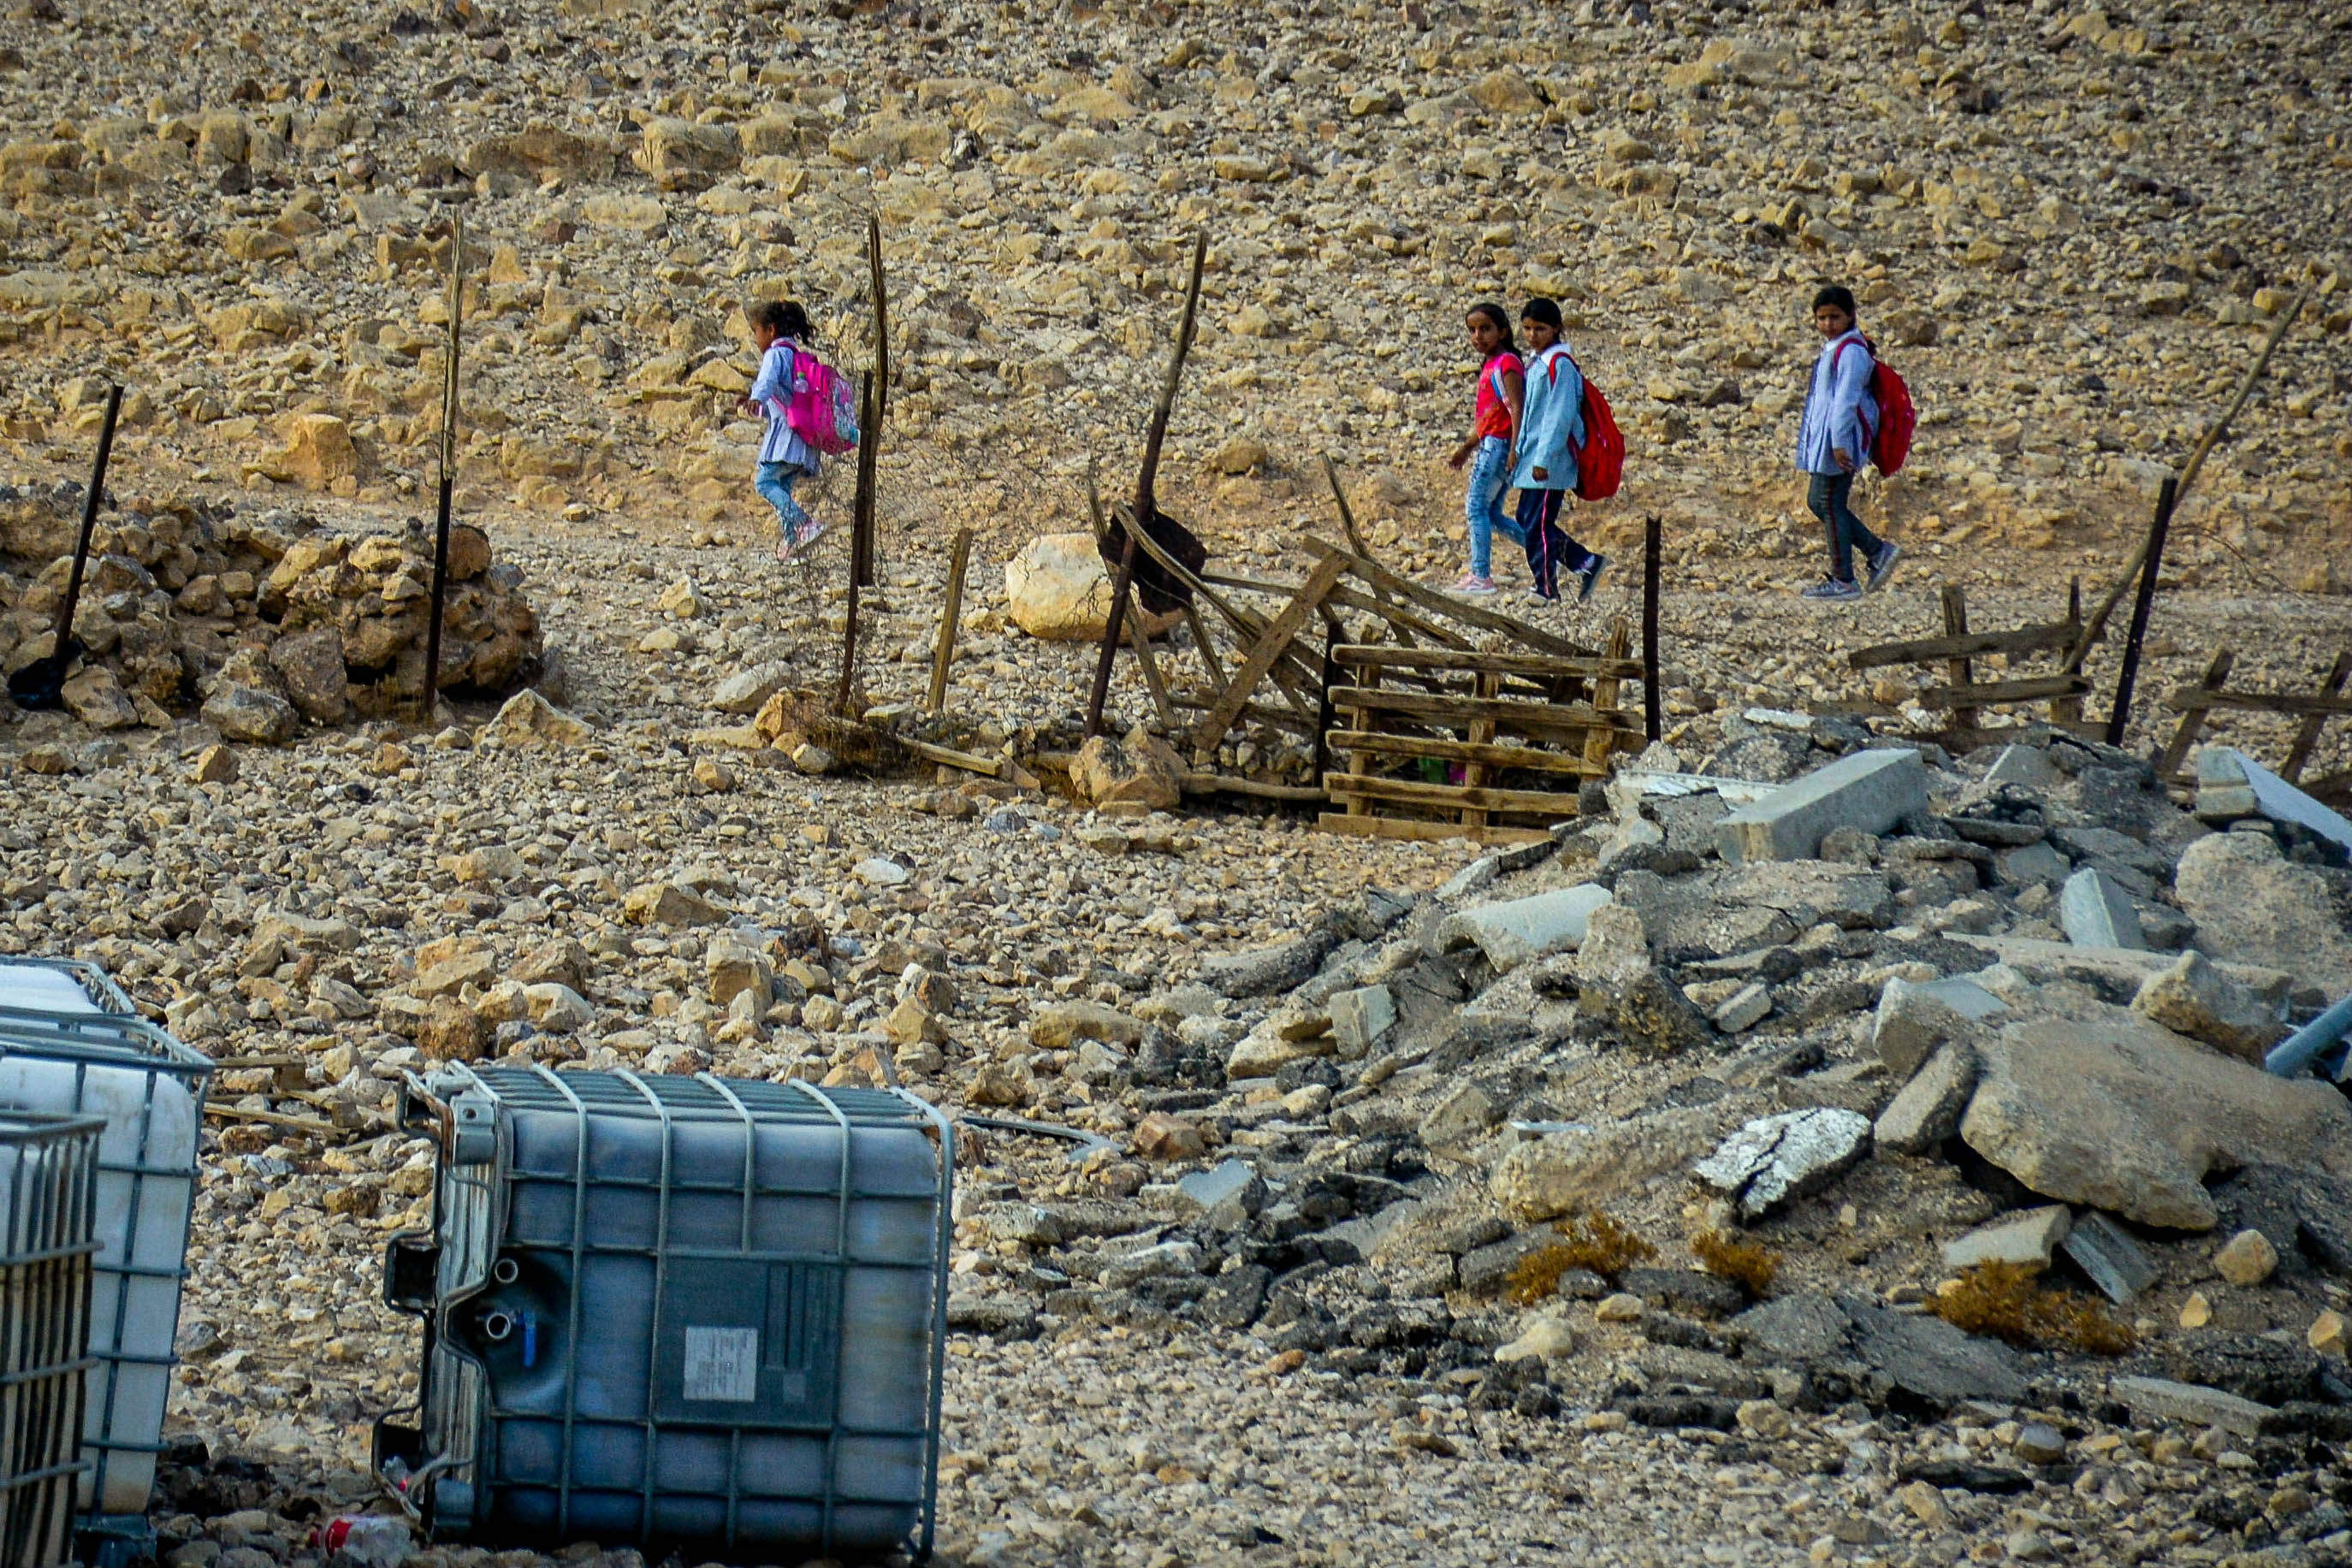 Palestinian school from the Al Awjah Bedouin community walk by empty water reserves (MEE/Qassam Muaddi)